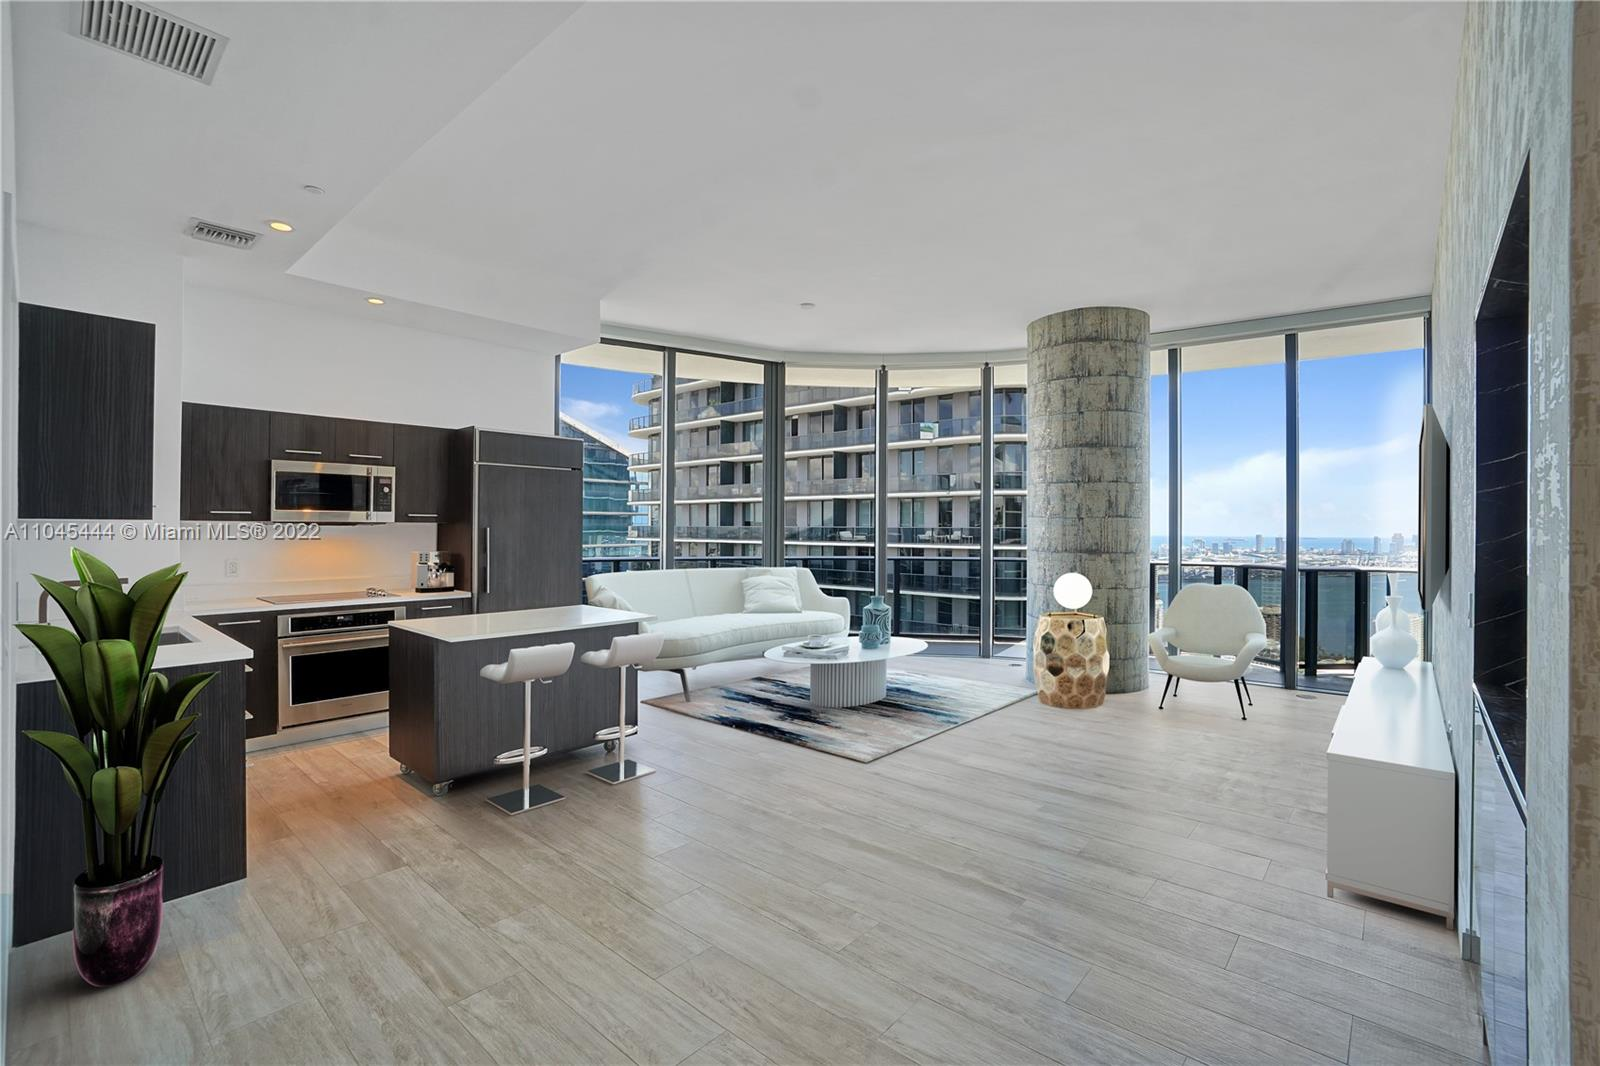 Boasting an array of sleek finishes and a thoughtful open plan layout, this immaculate 3-bedroom, 3 1/2 bathroom condo is a paradigm of contemporary Miami living. This stunning designer appointed 1,701 sq. ft. lower Penthouse features include wide plank engineered hardwood floors, 12 feet ceiling, floor to ceiling windows, central heating and cooling, and washer/dryer. Beyond a functional entryway space the home flows into a luminous, open- concept living, dining, and kitchen area. This lower Penthouse is on the 47th floor and has the incredible views of Biscayne Bay, Miami Skyline and Ocean to the East, North and South. This stunning condominium located right in the heart of Brickell city center steps to upscale shopping, dining & entertainment.